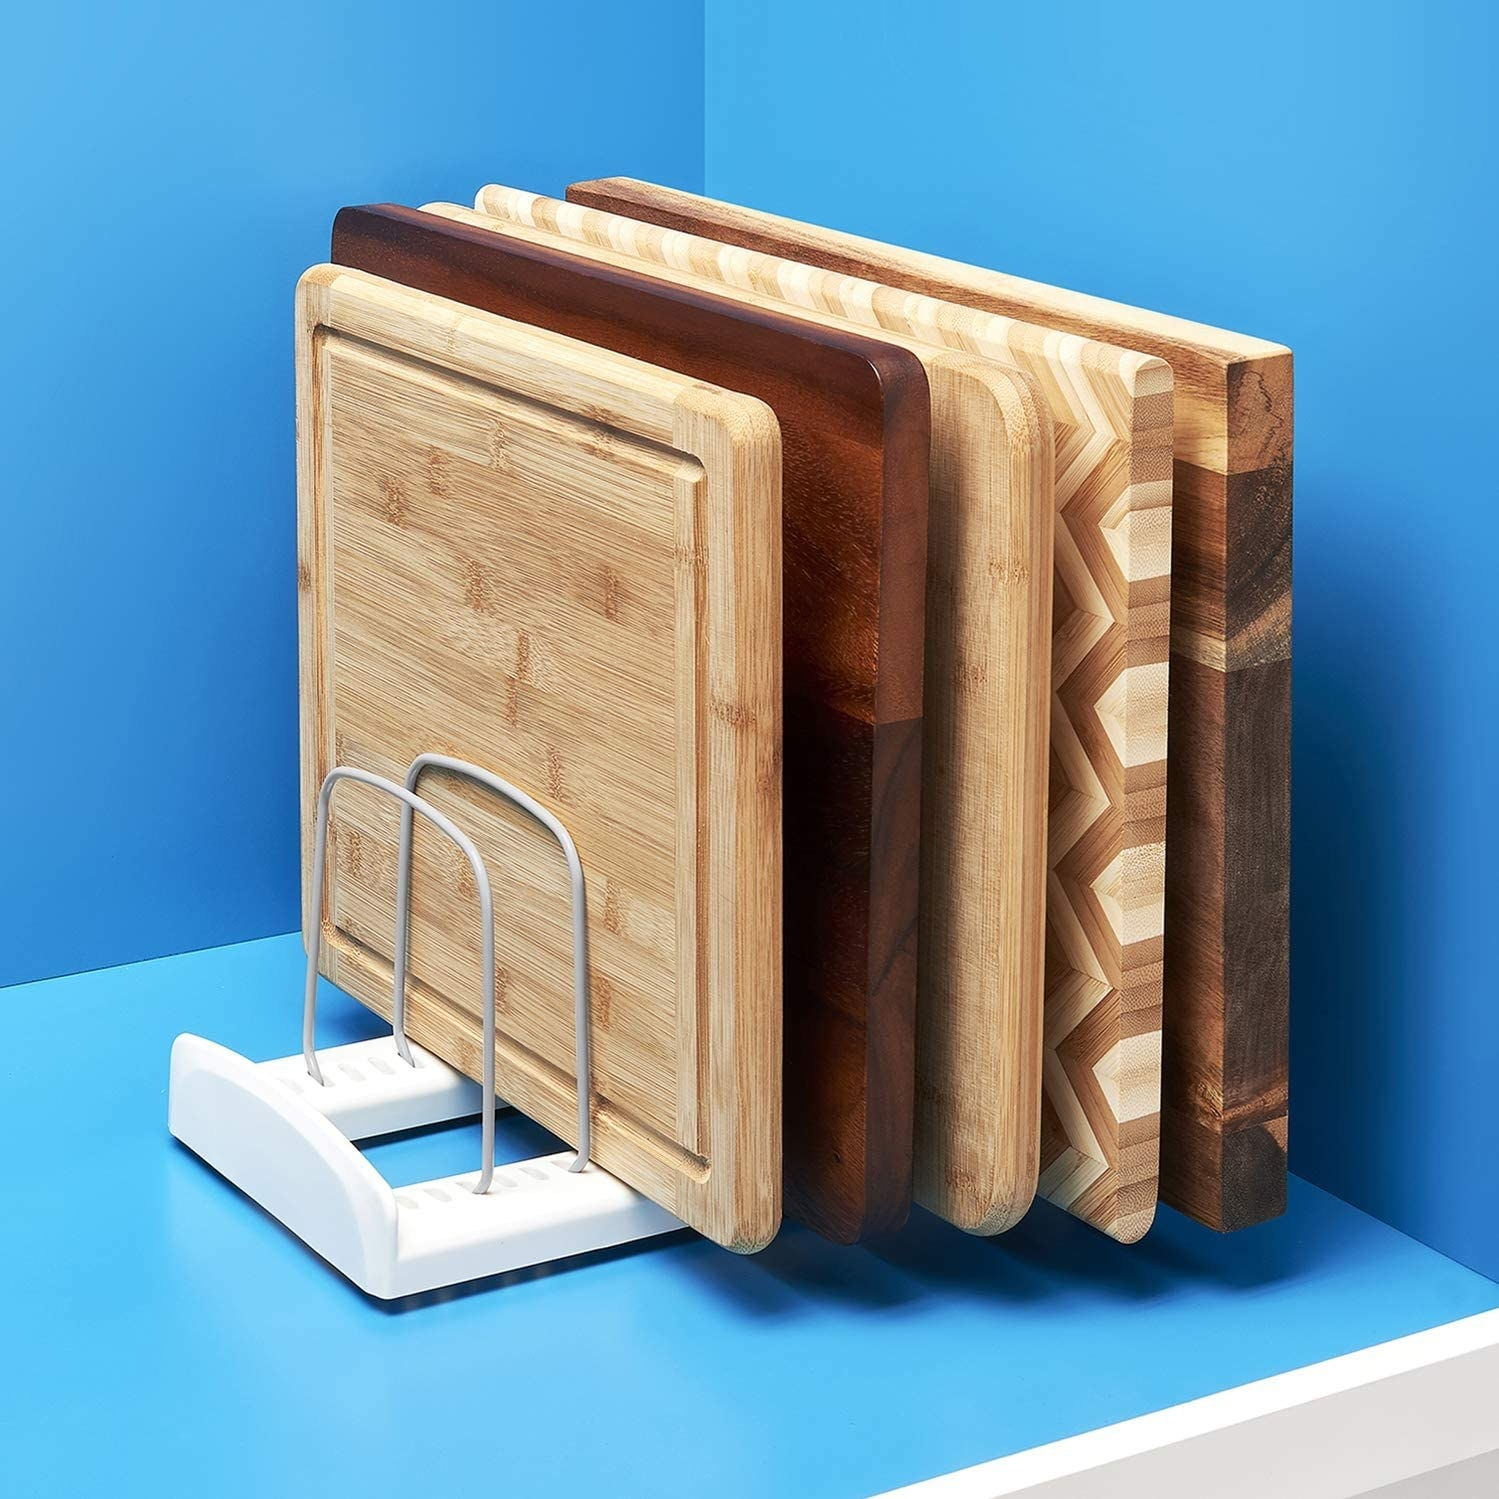 The adjustable rack holding cutting boards